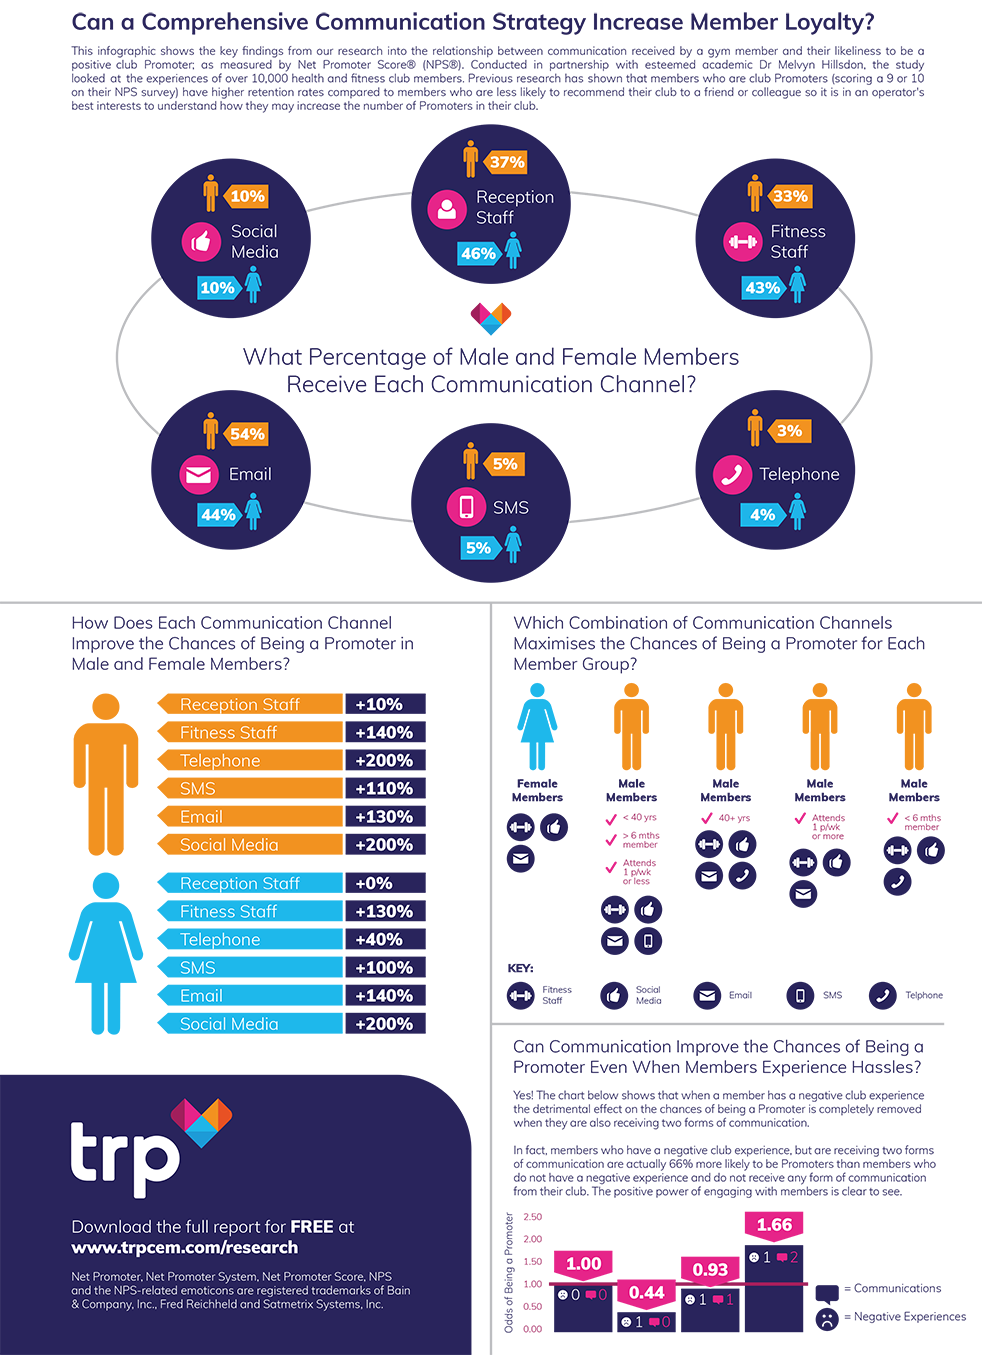 Can a Comprehensive Communication Strategy Increase Member Loyalty Research Infographic